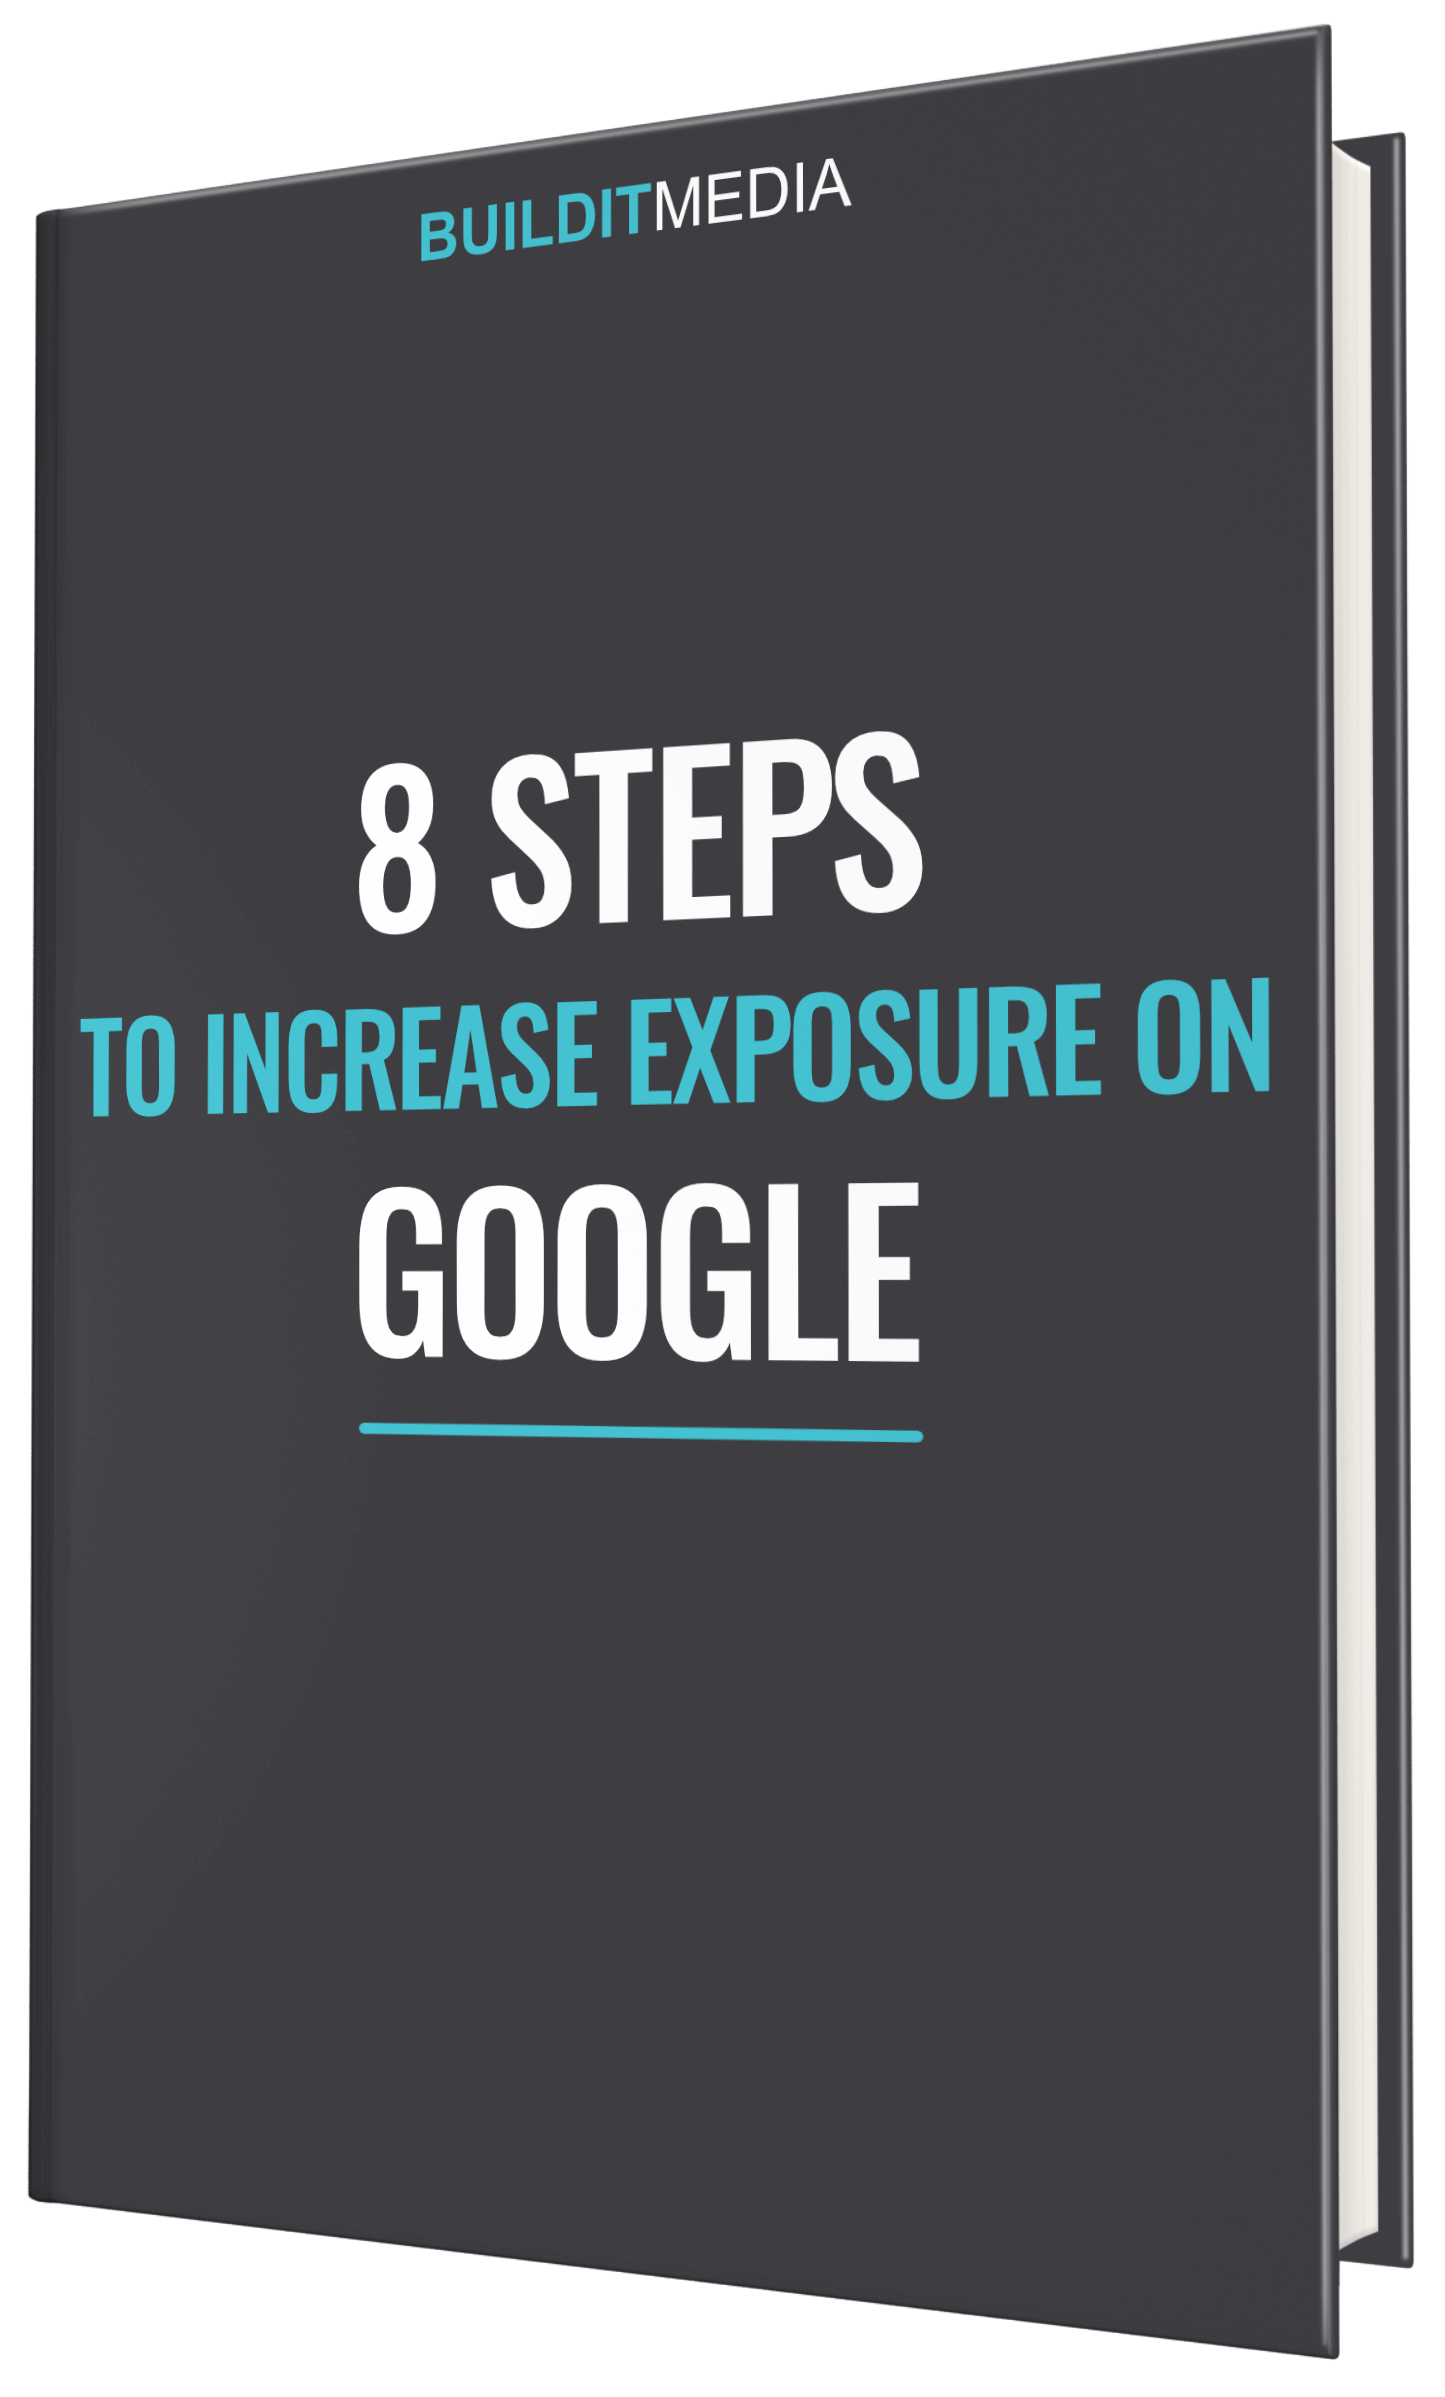 8Steps to Increase Exposure on Google